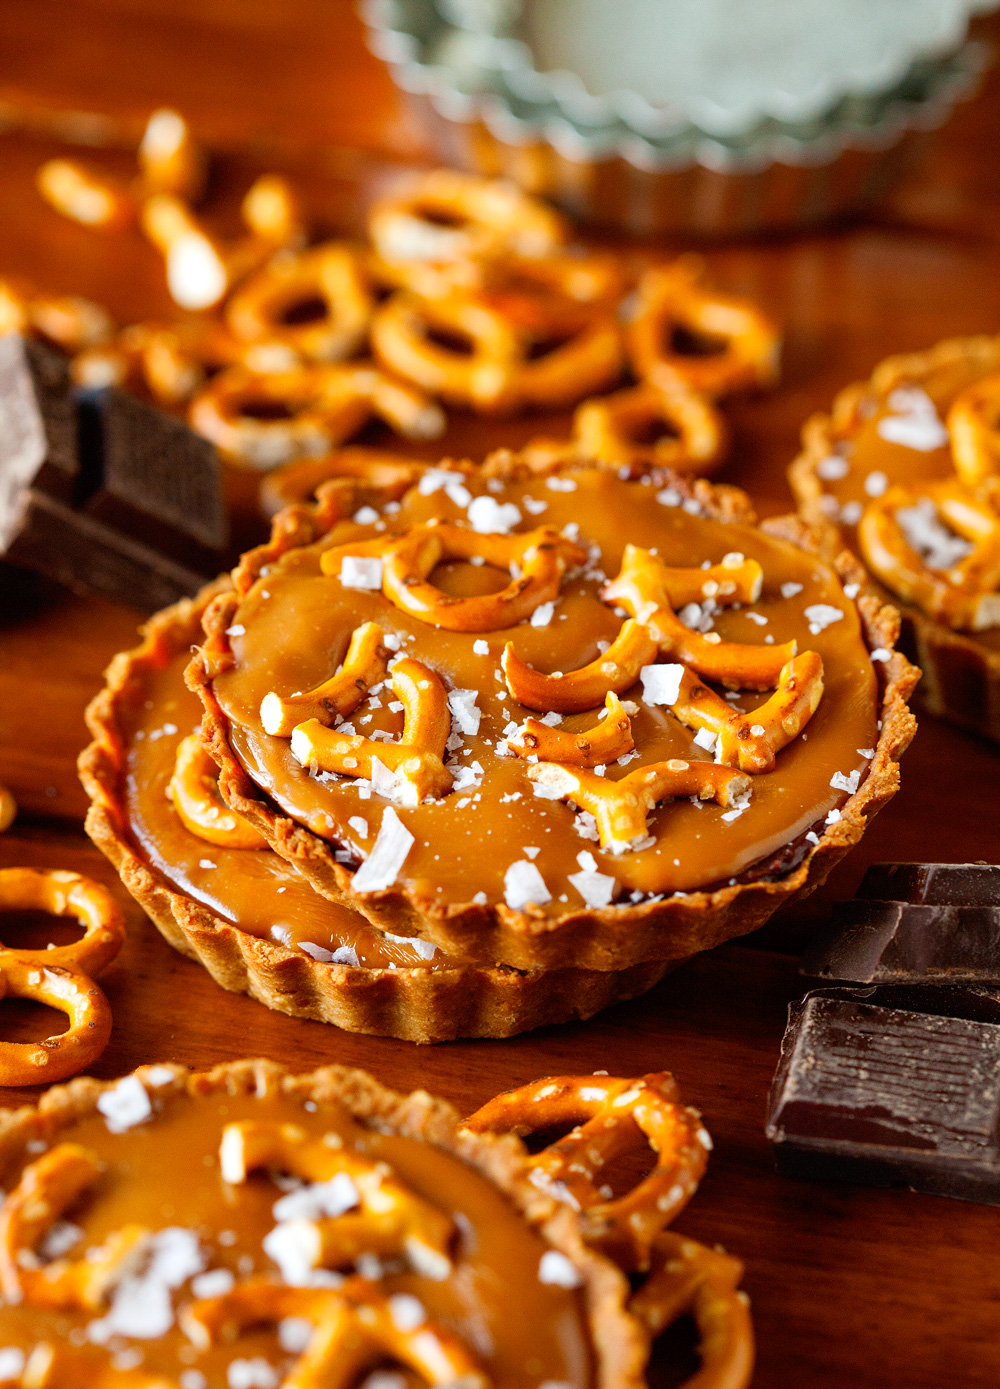 Chocolate Caramel Mini Tarts with Pretzel Crust